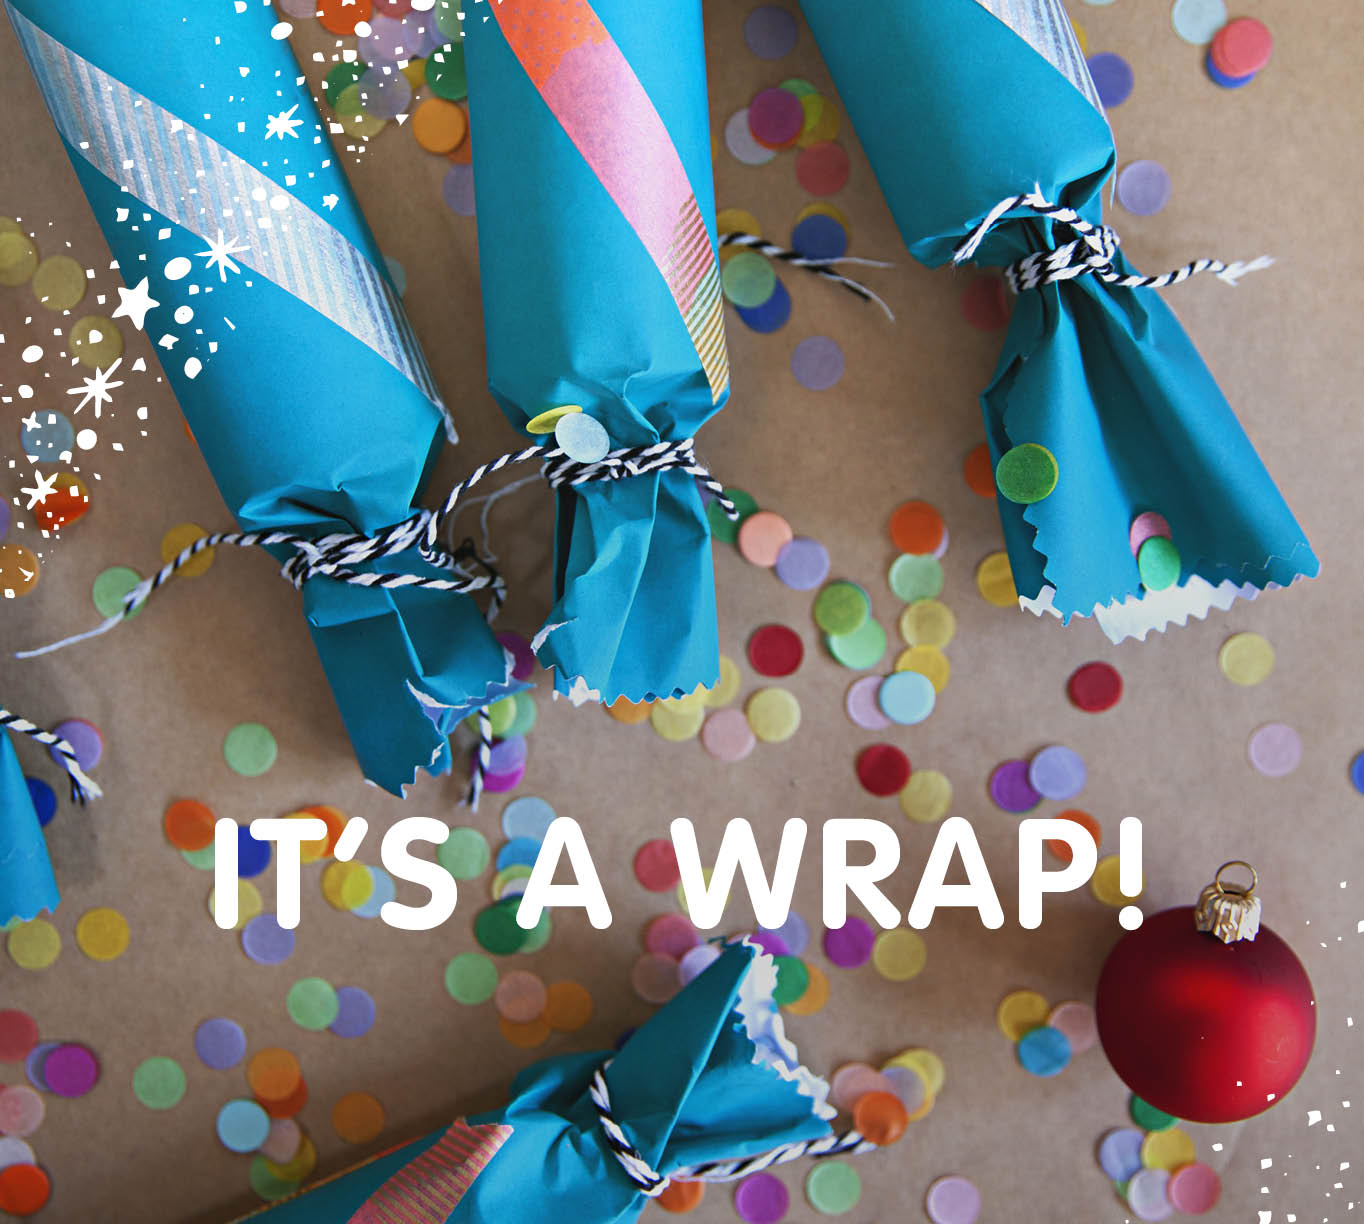 CH4432_Charter Hall Xmas Roll Out_Webtiles_Wrapping-NewWebsite_@2-682x612